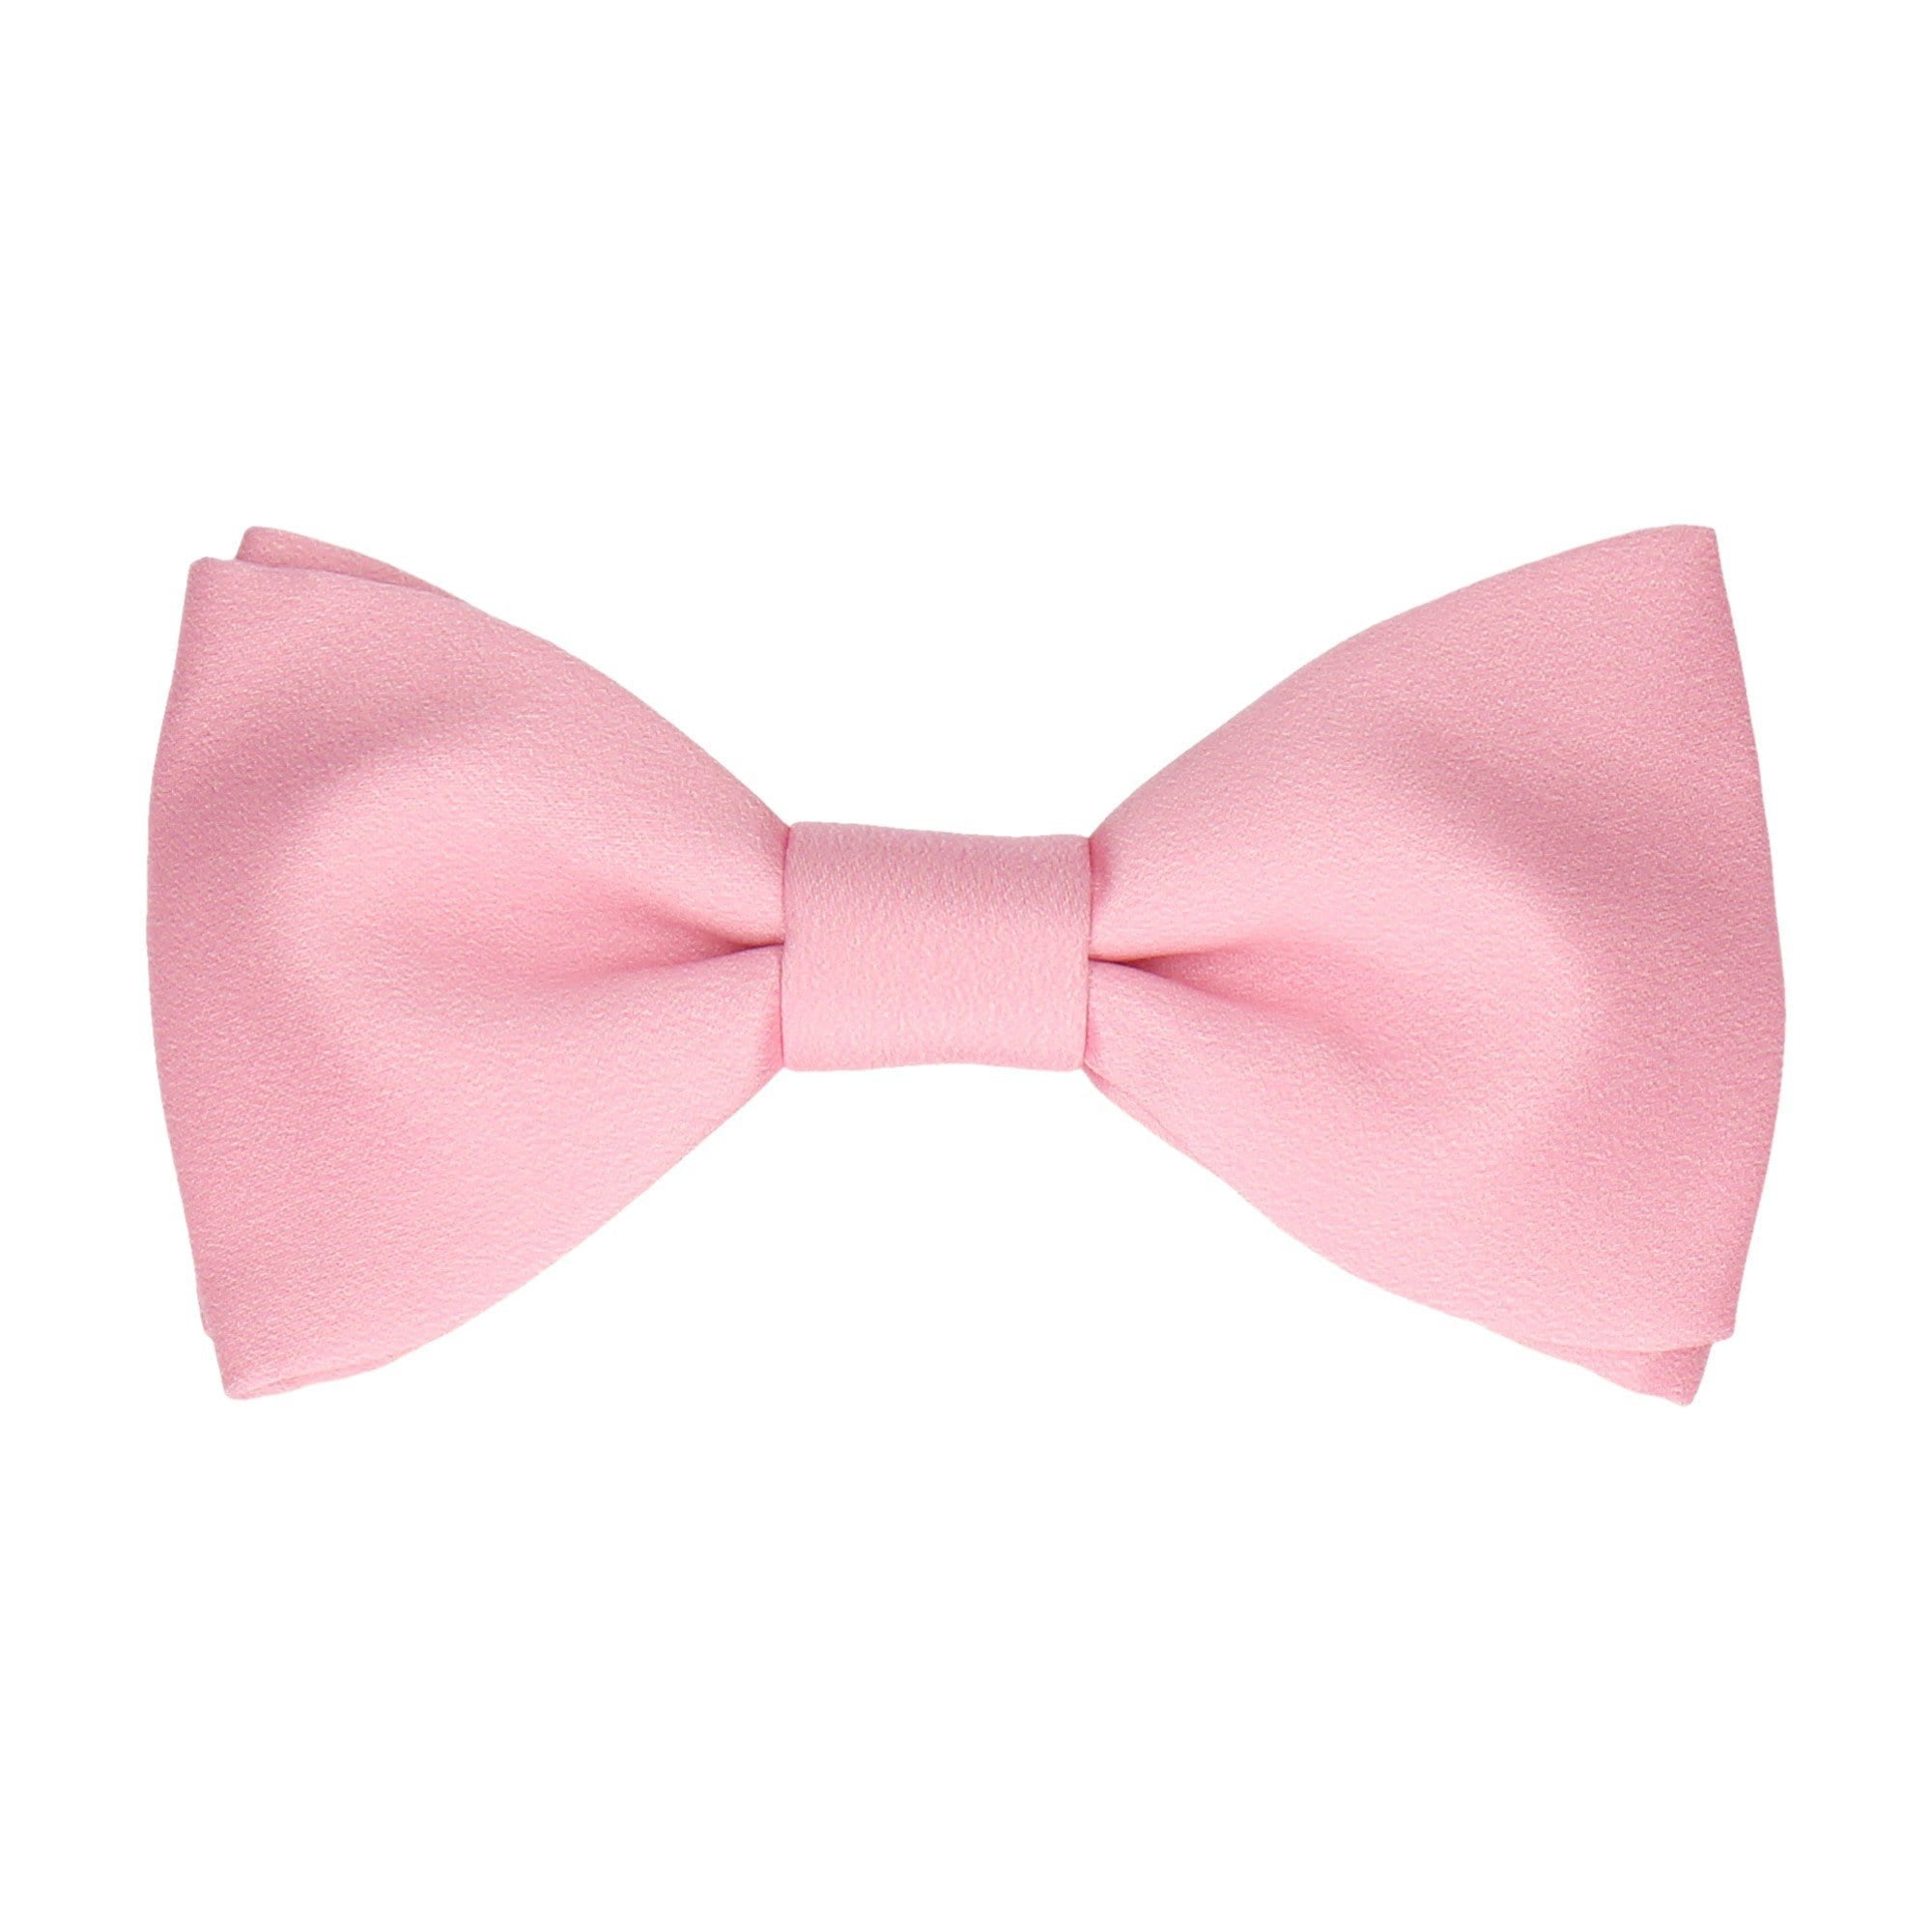 Classic in Pink Bow Tie